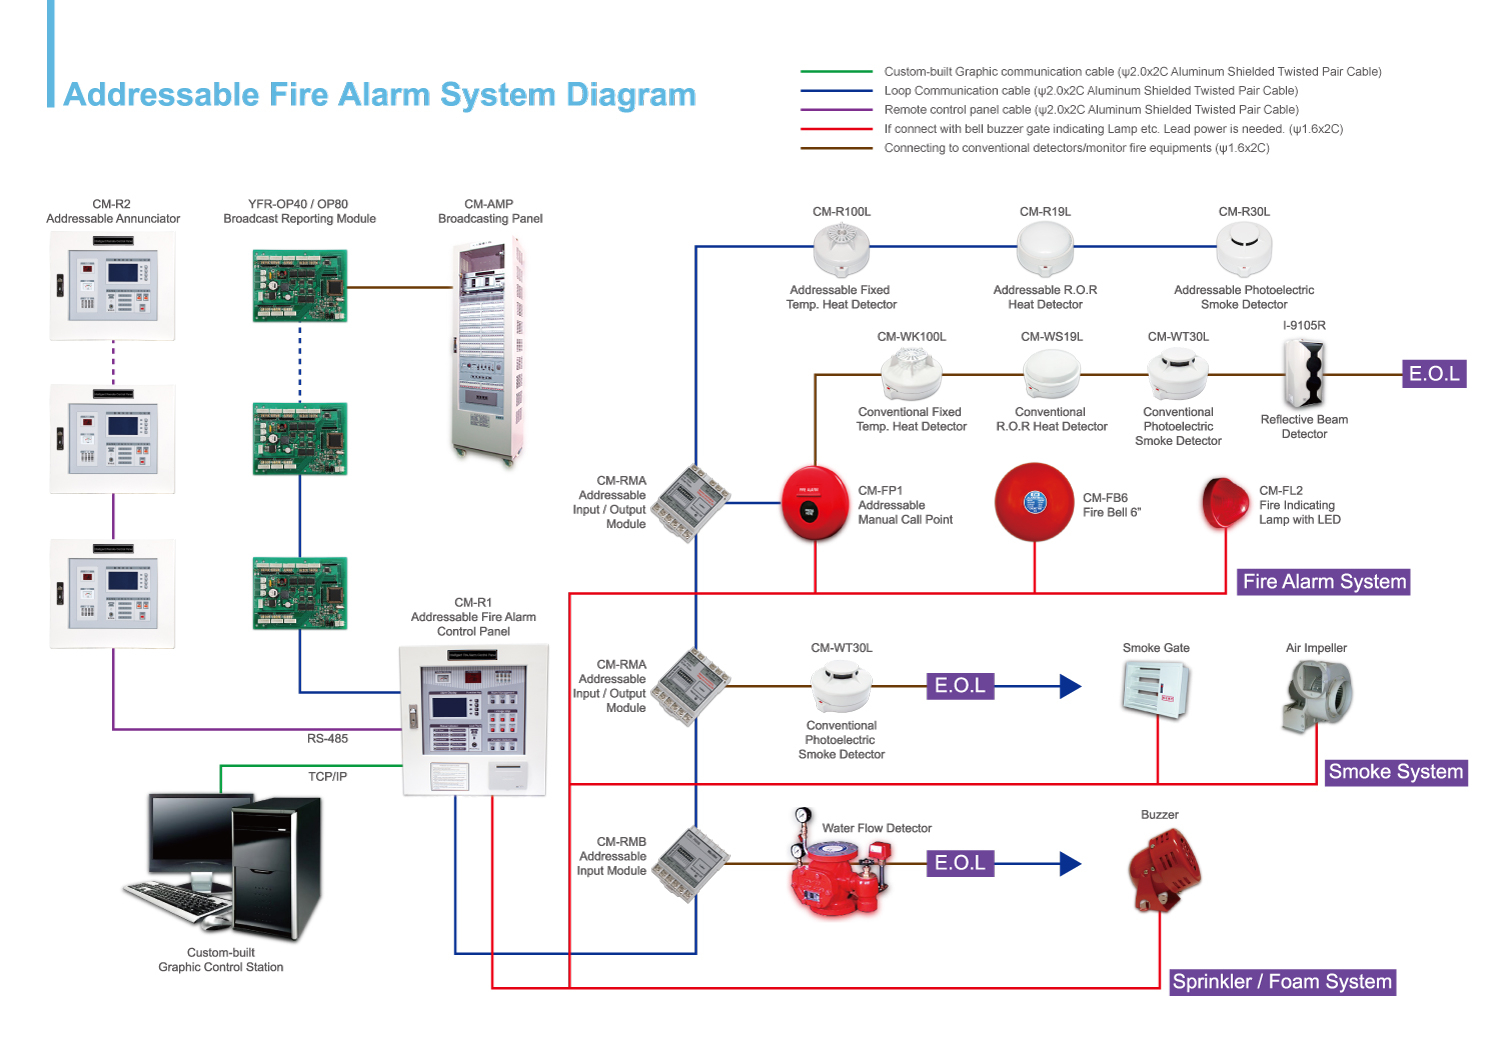 hight resolution of fire alarm system wiring diagram wiring library code alarm ca6552 system wiring diagram addressable fire alarm